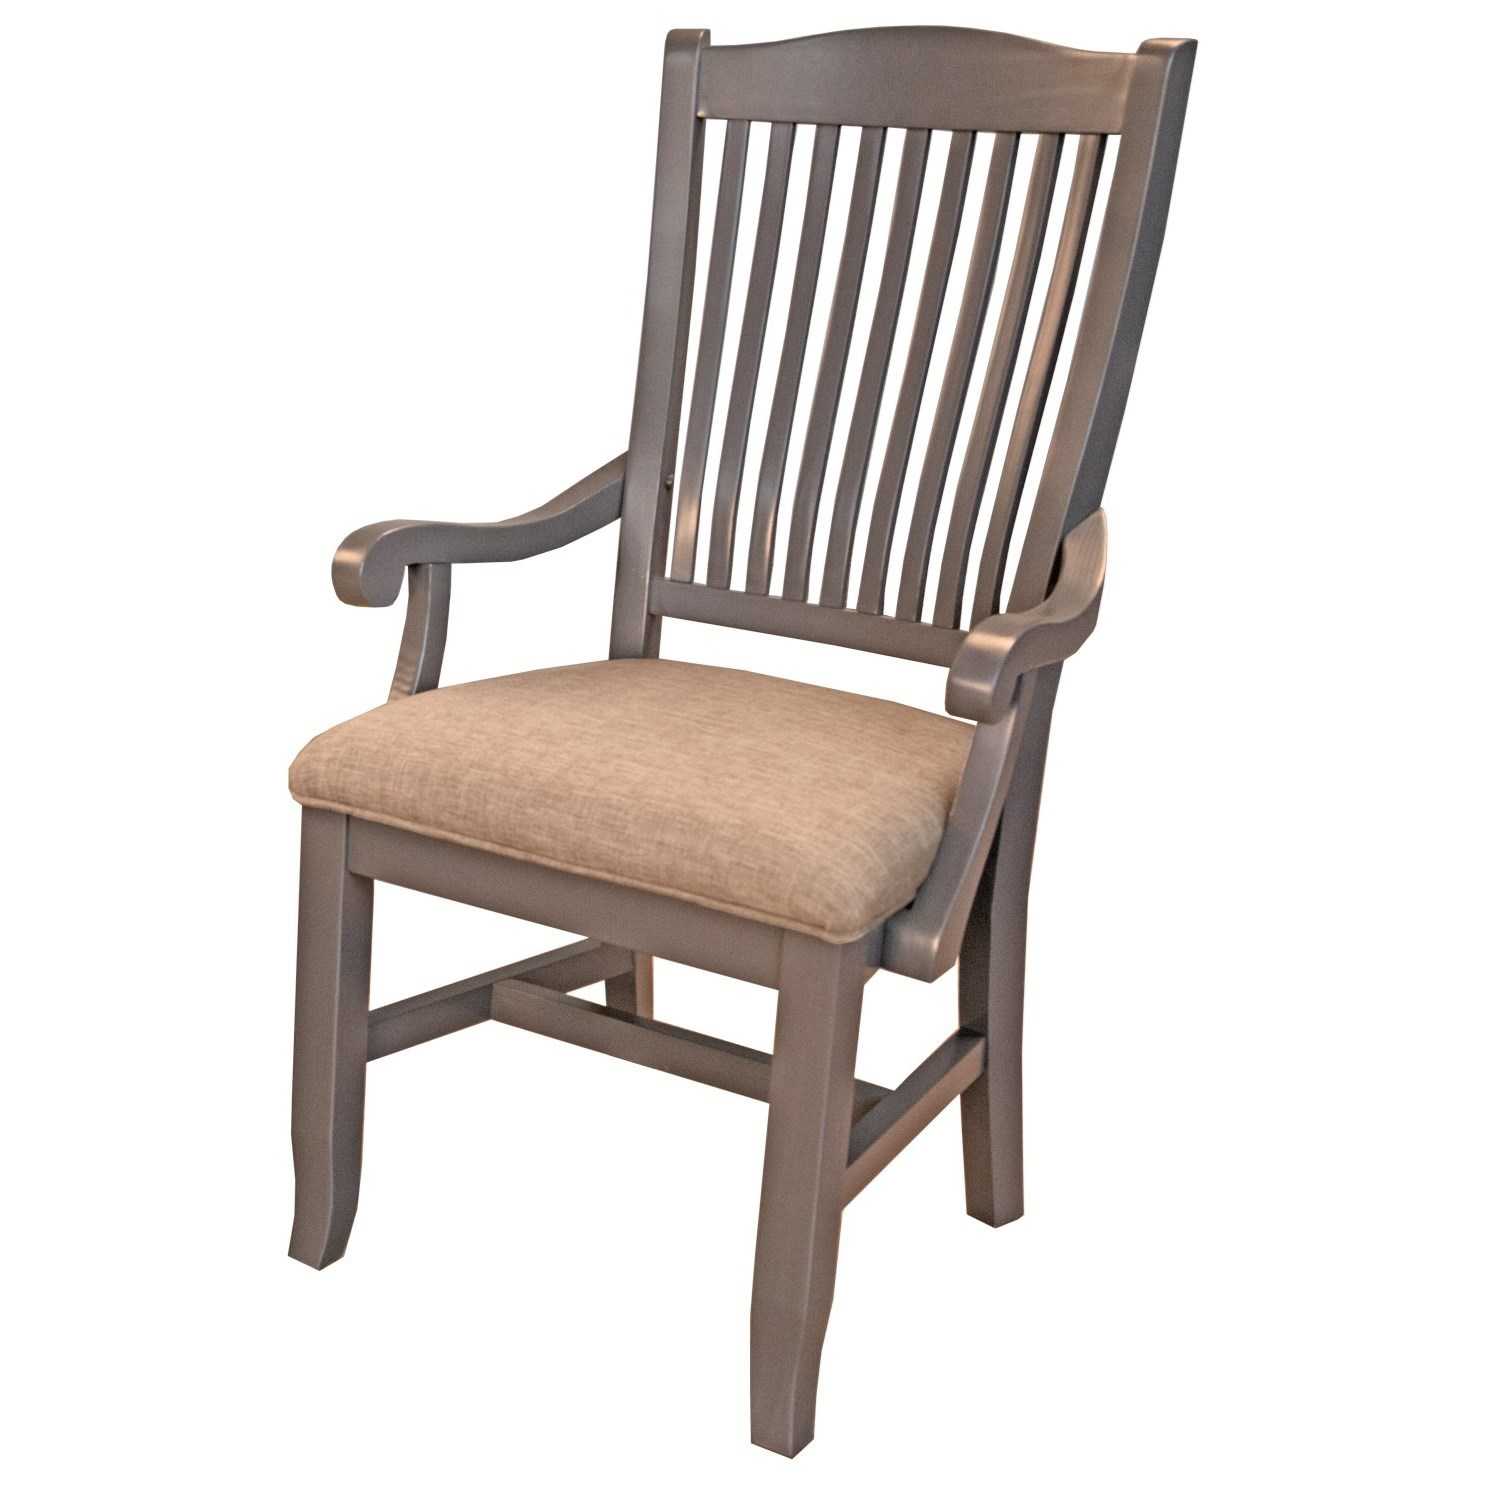 Port Townsend Slatback Arm Chair with Upholstered Seat by A-A at Walker's Furniture